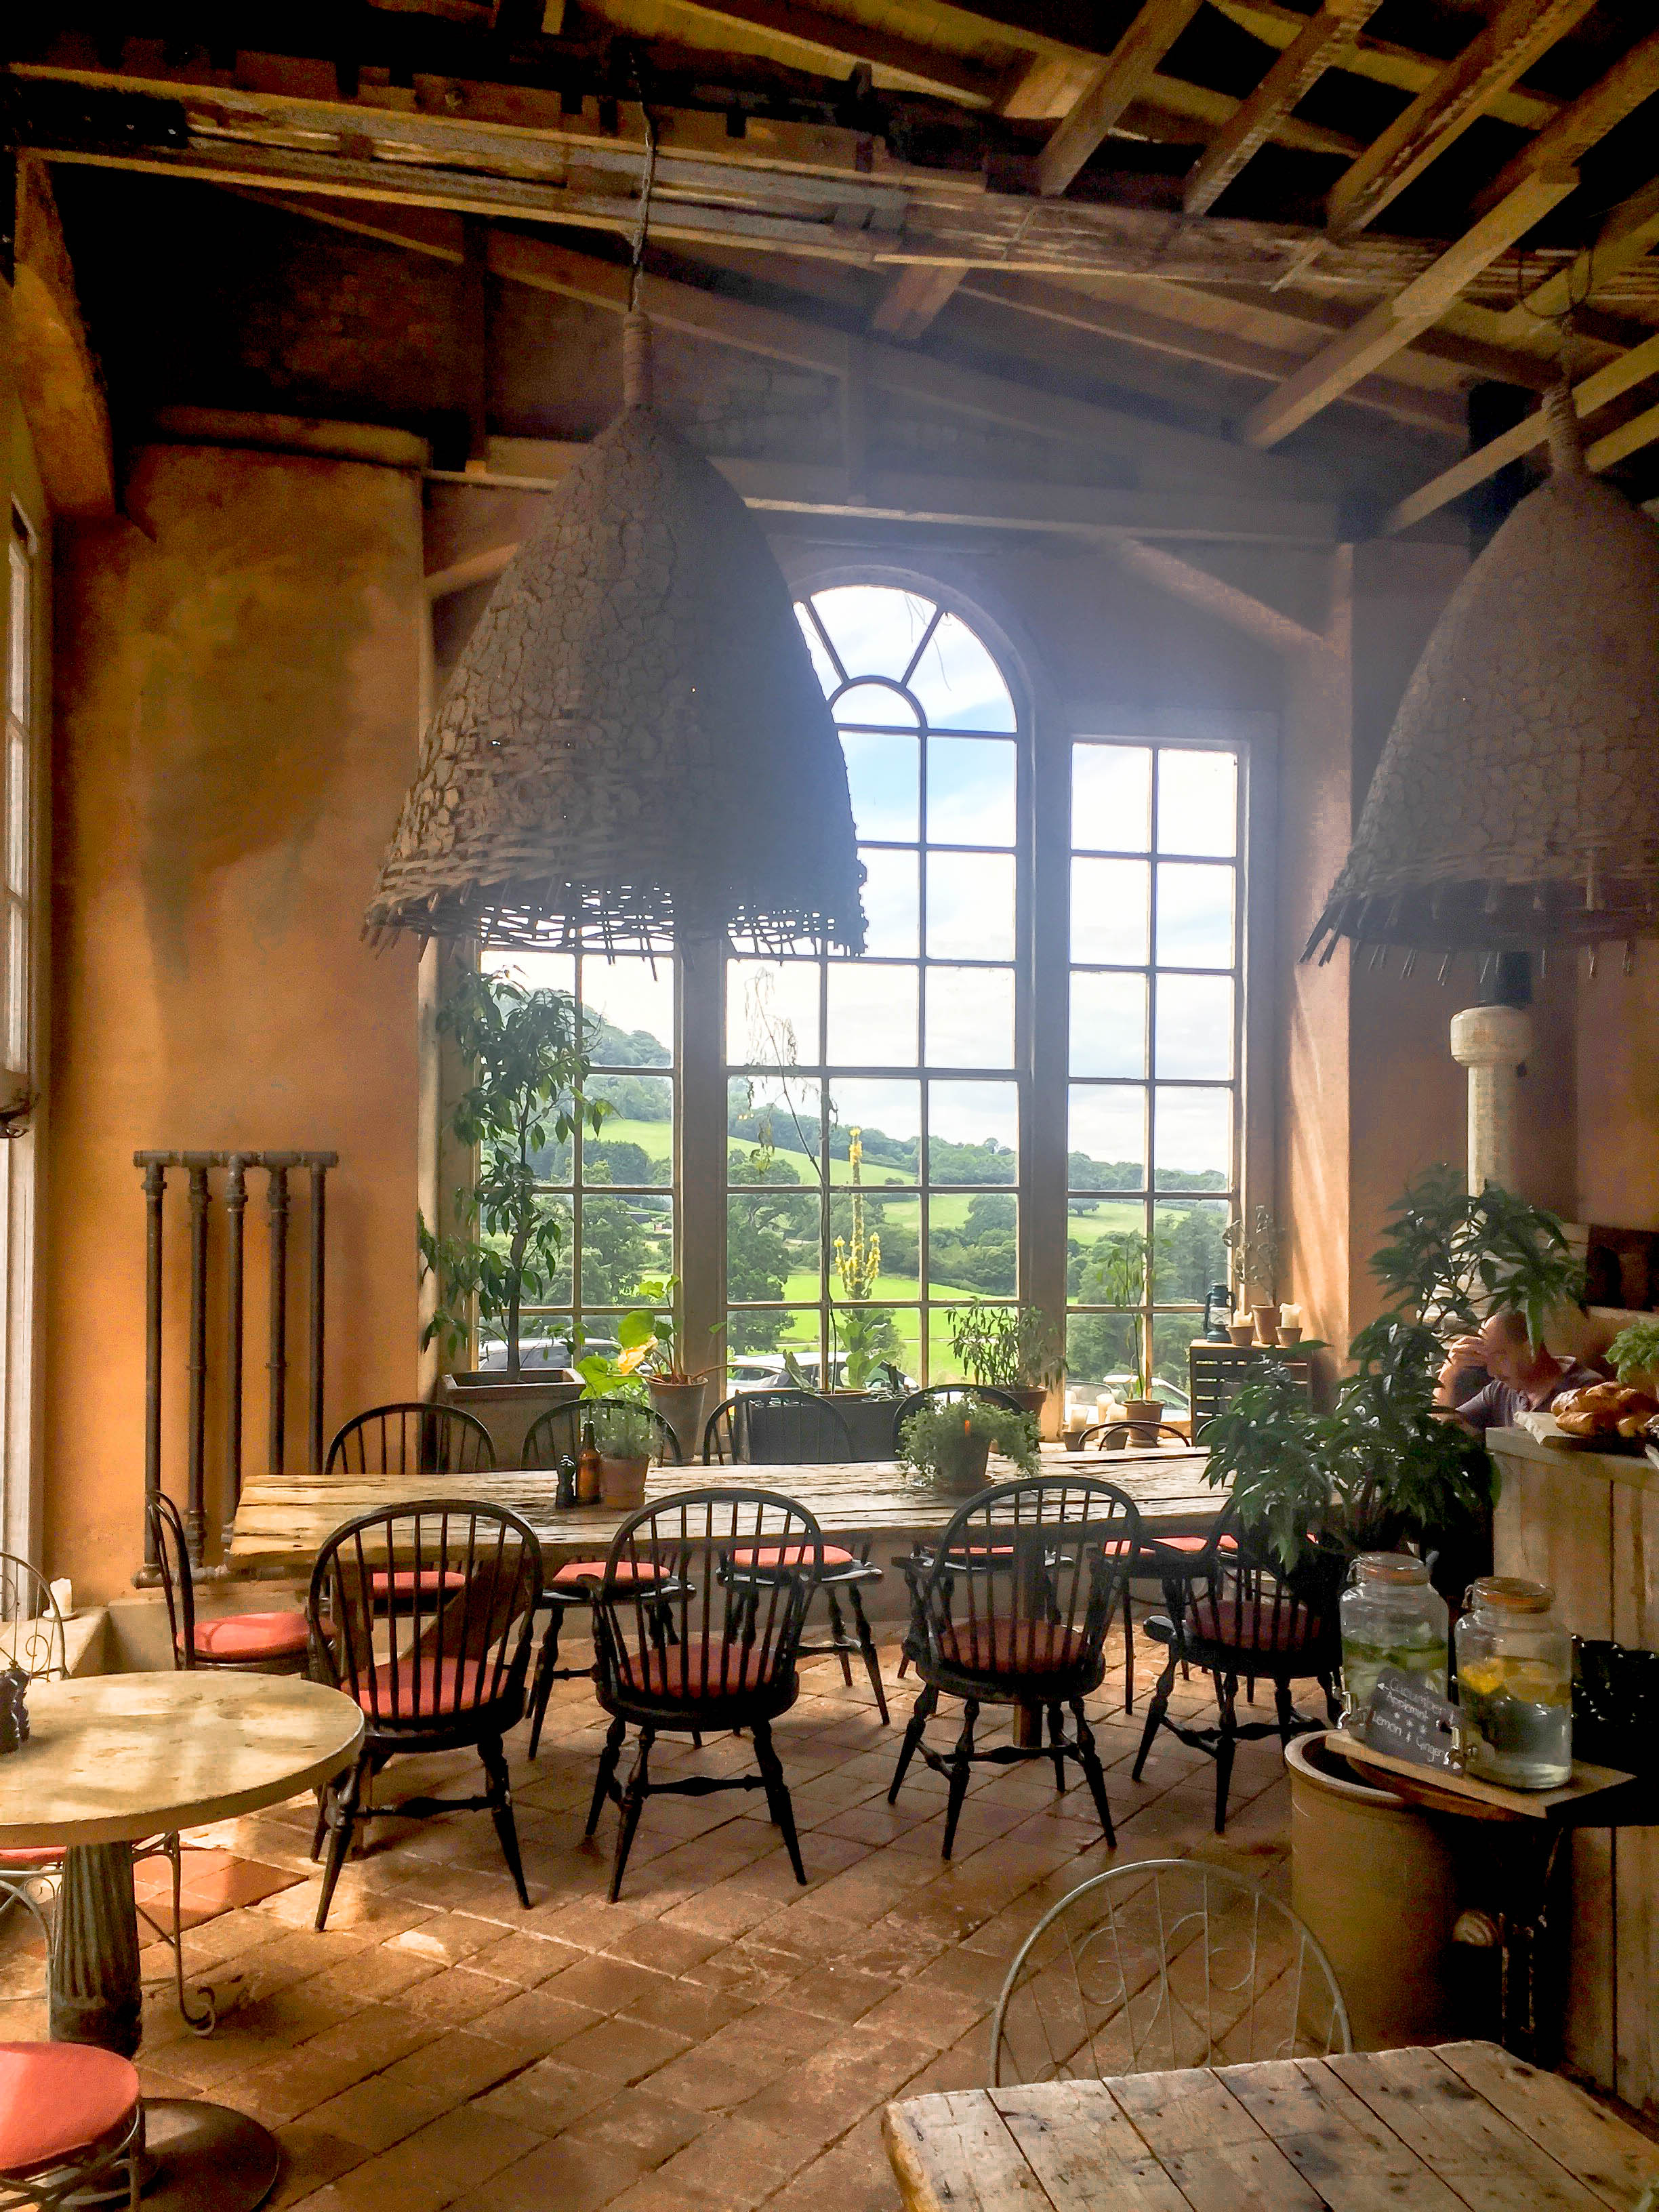 The Folly - A rustic lunch is served indoors and out in this open-kitchen dining area complete with wood-fired pizzas and a menu designed to inspire sharing.